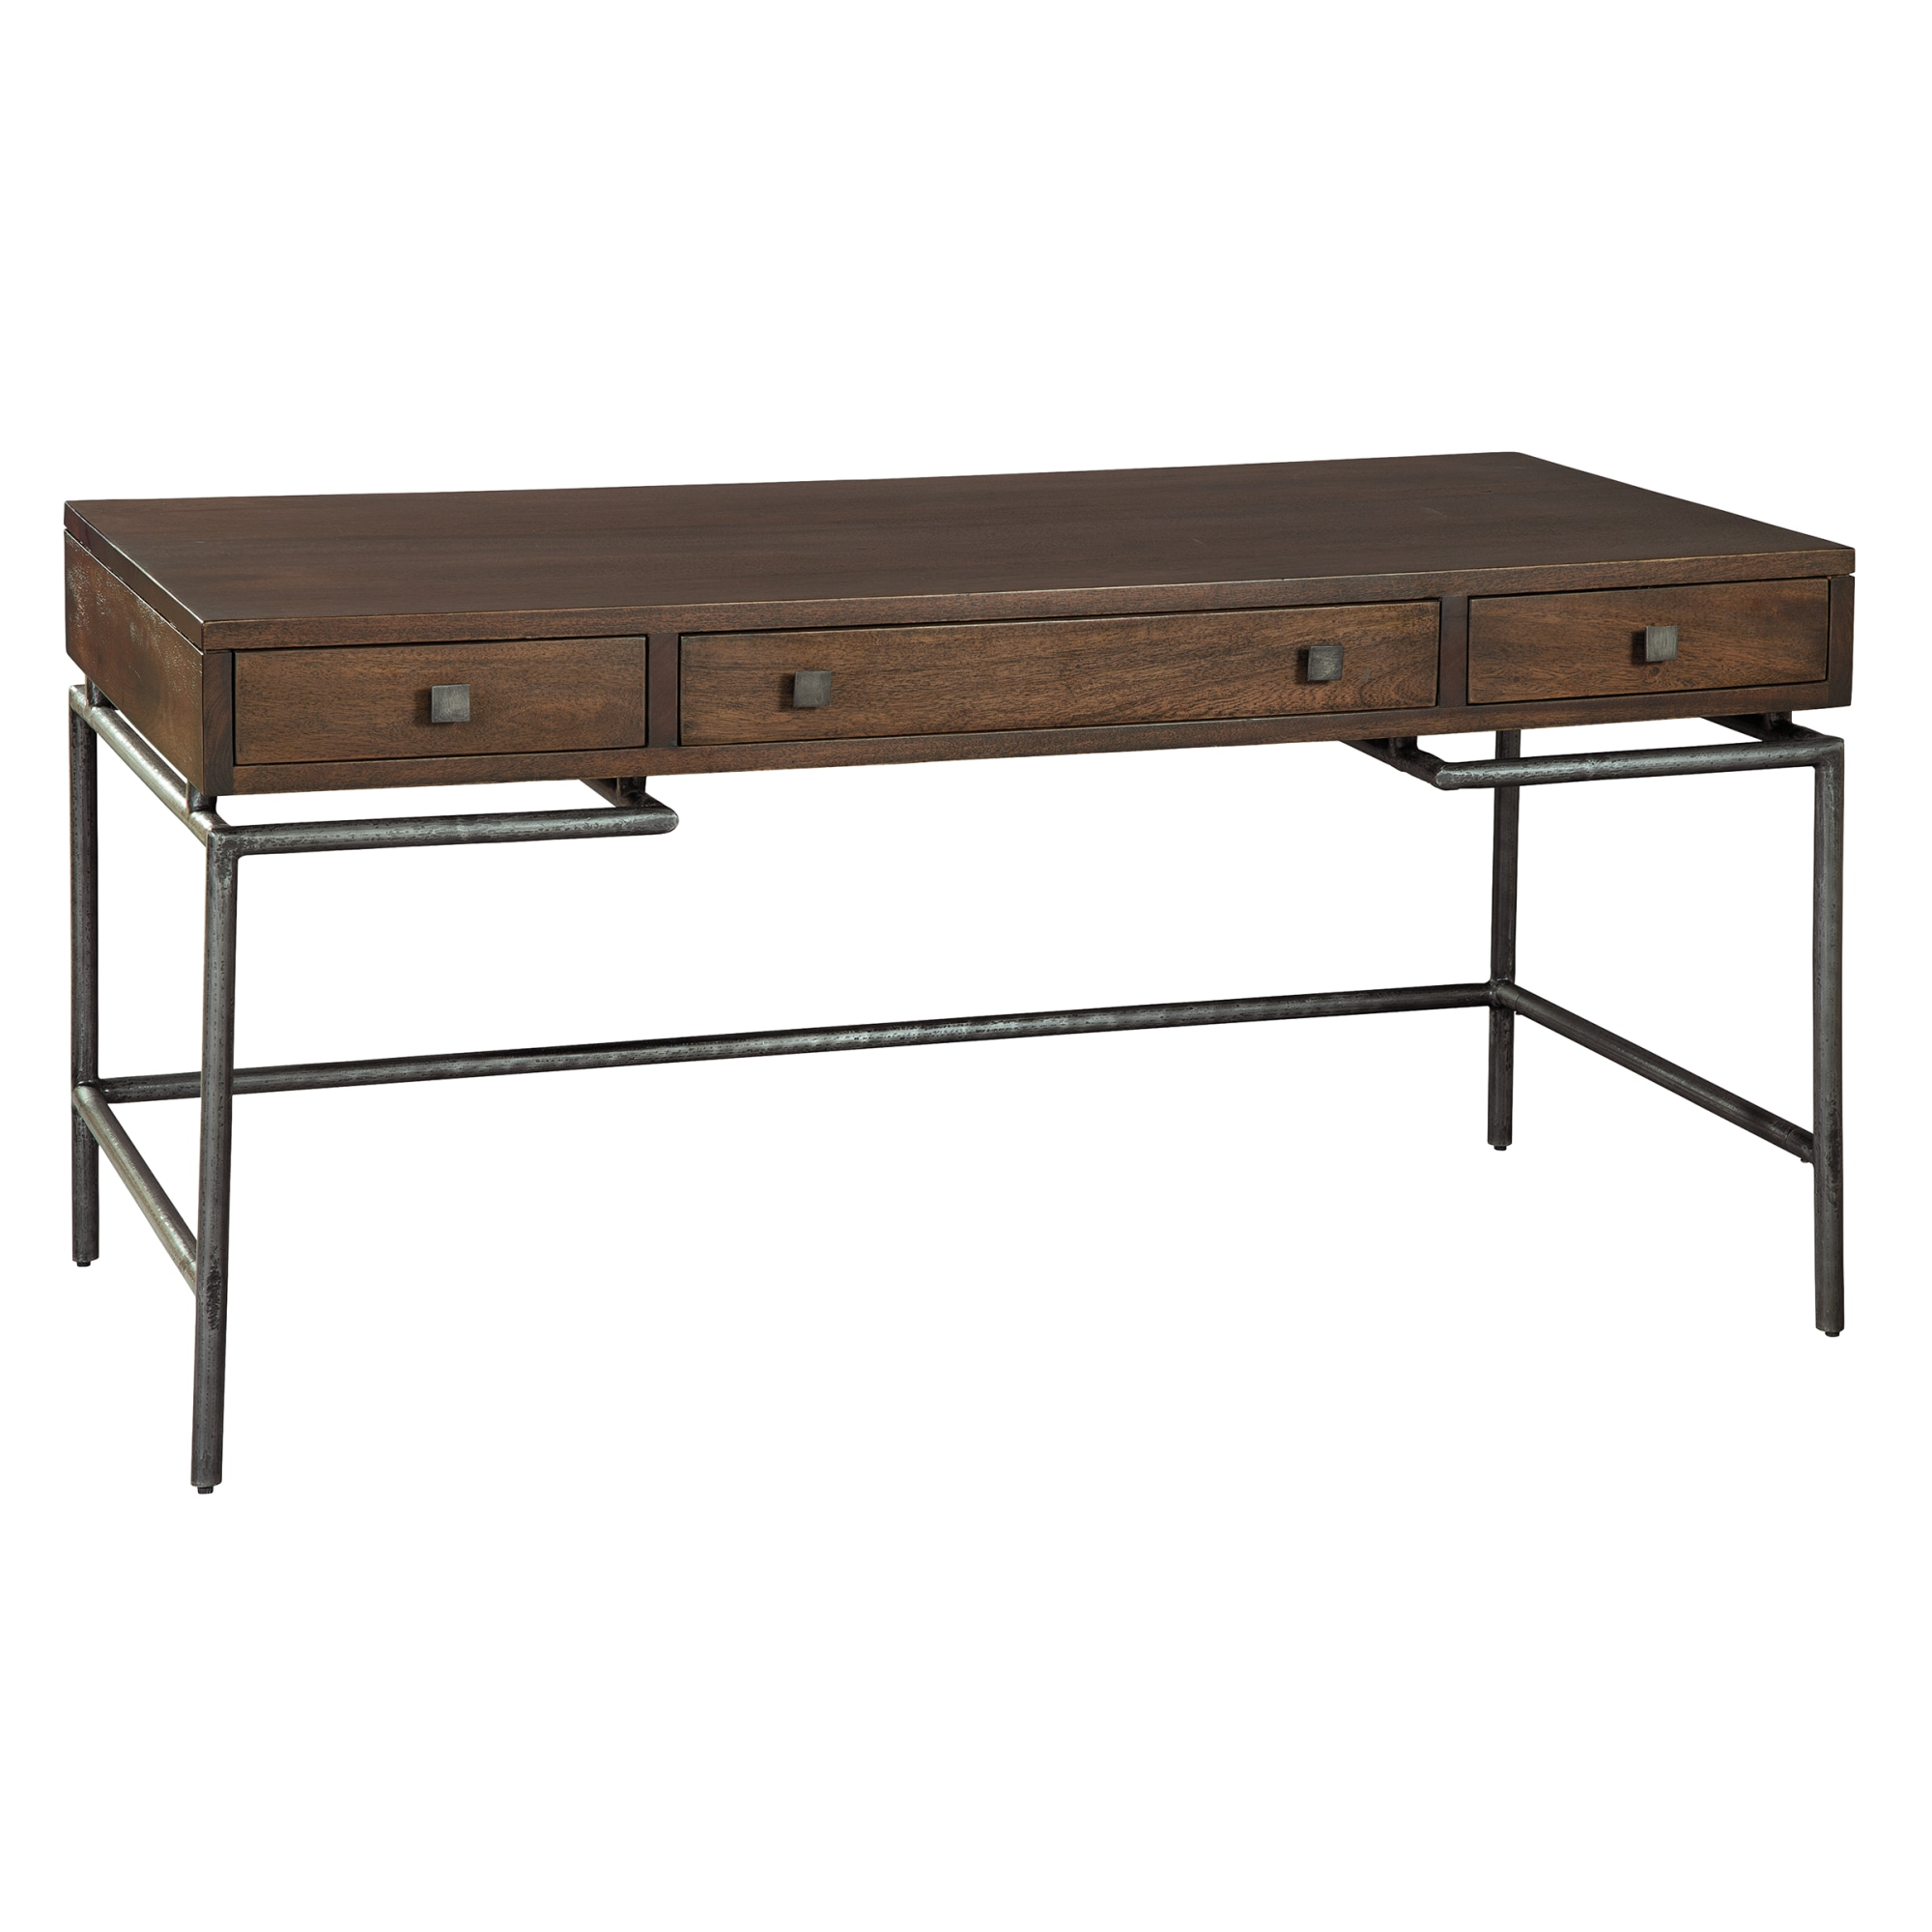 Image for 2-4250 office@home Sedona Floating Writing Desk from Hekman Official Website